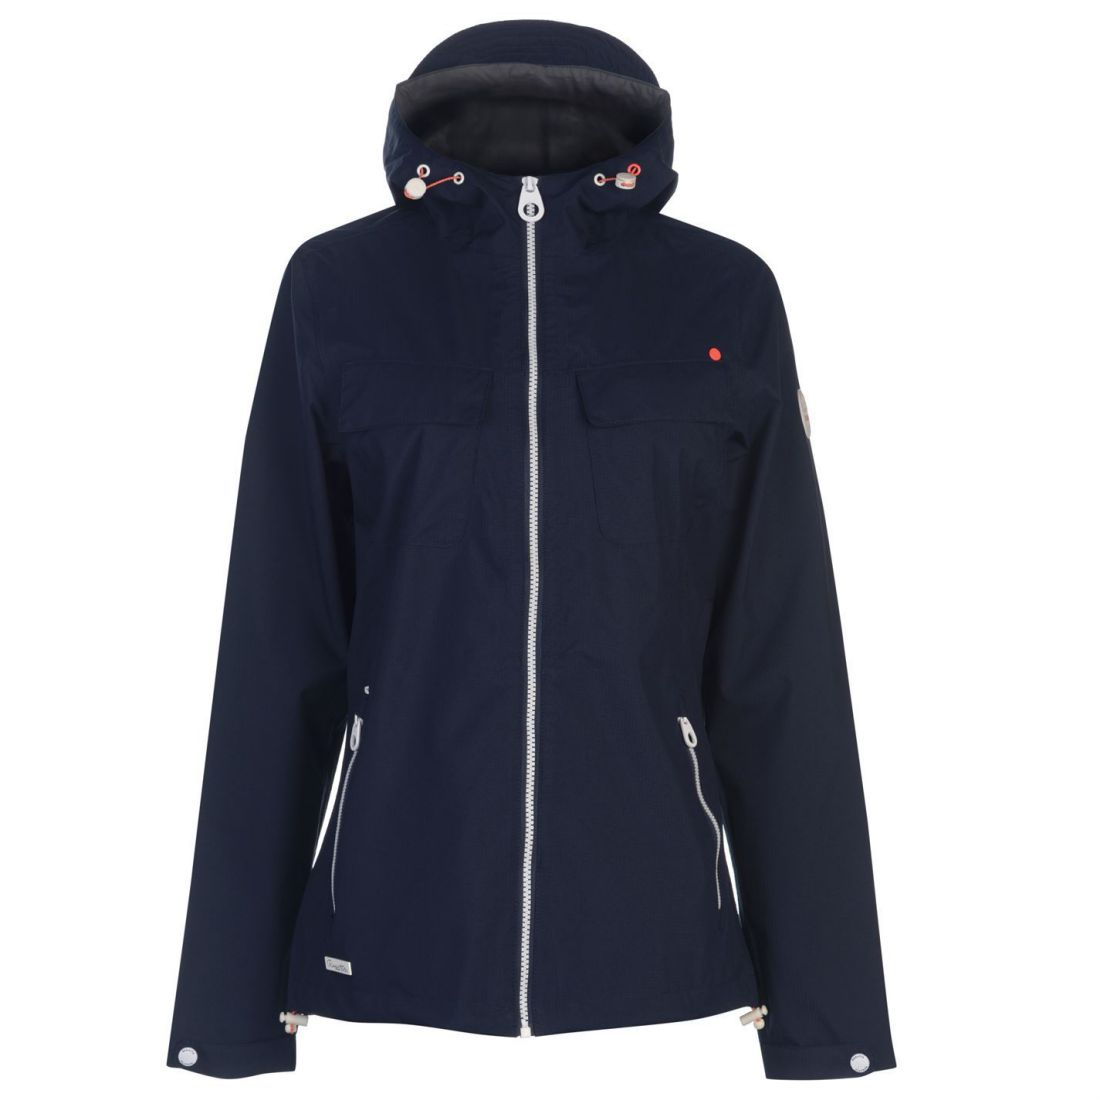 elegant and graceful how to find superior quality Details about Regatta Womens Jakeisha Jacket Waterproof Coat Top